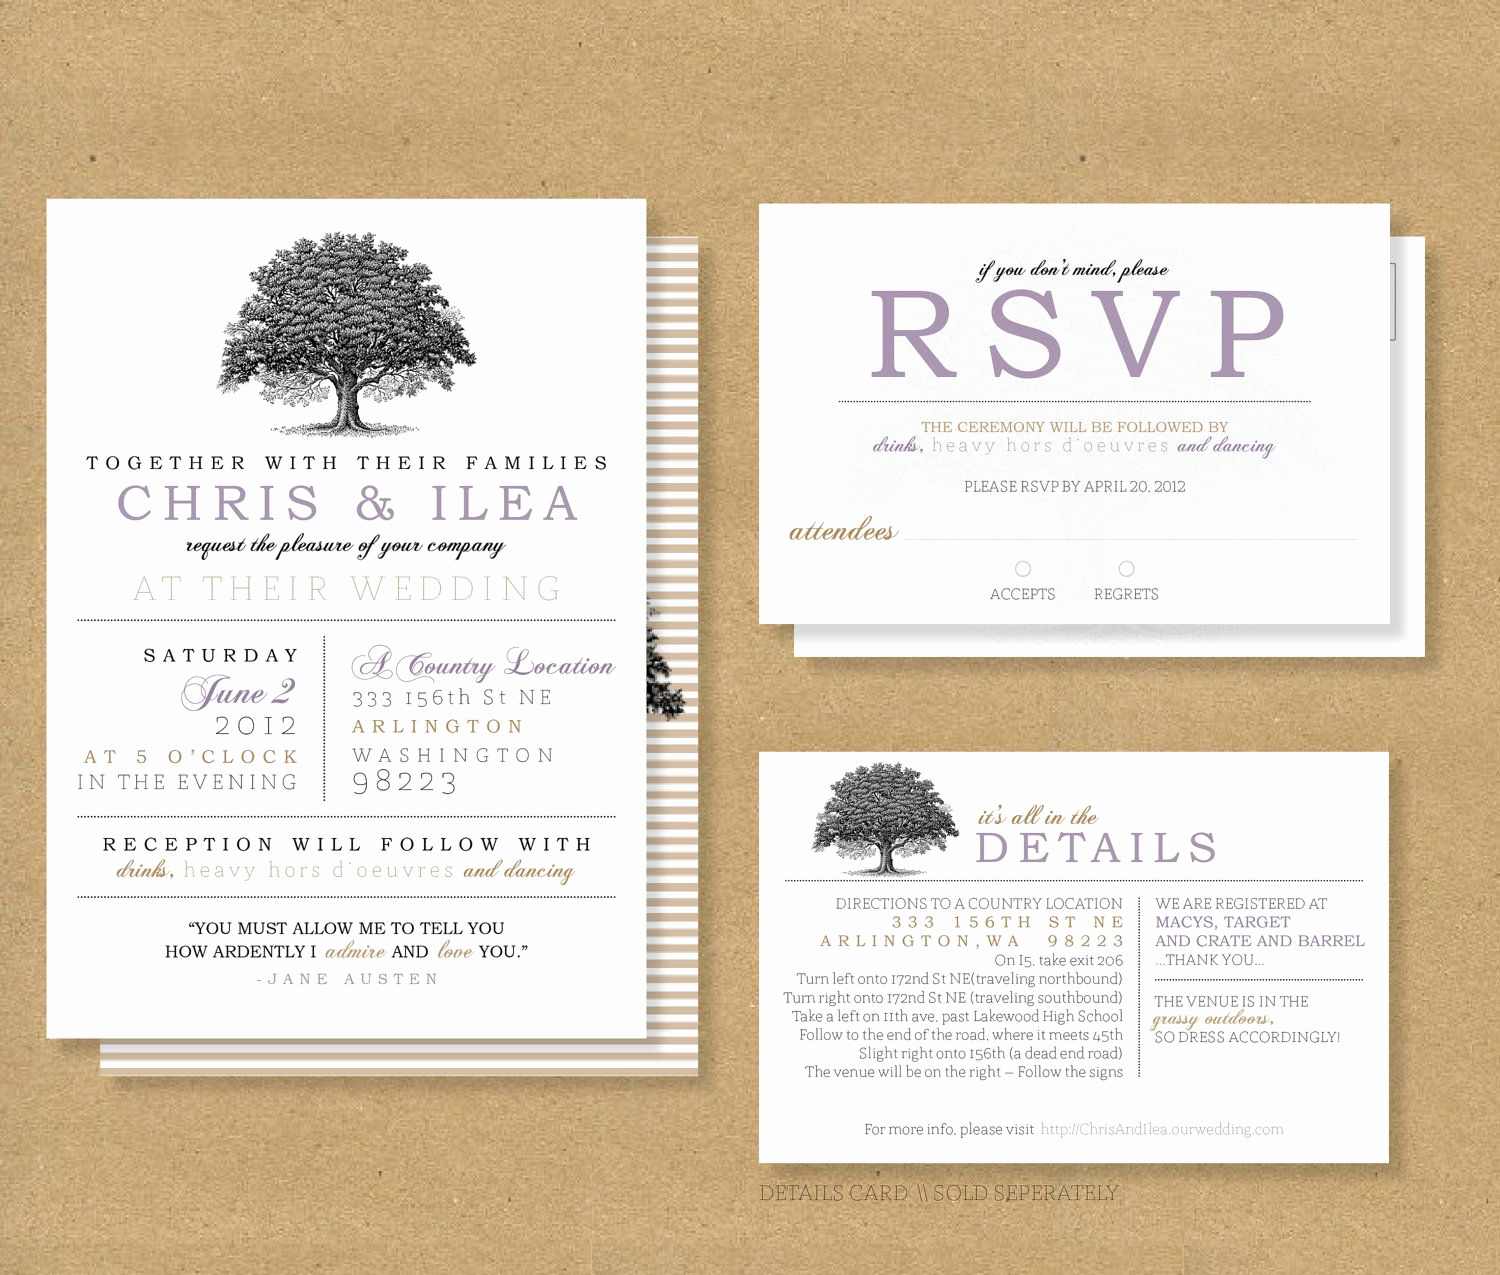 Sample Of Weeding Invitation Beautiful Wedding Invitation Wedding Rsvp Wording Samples Tips